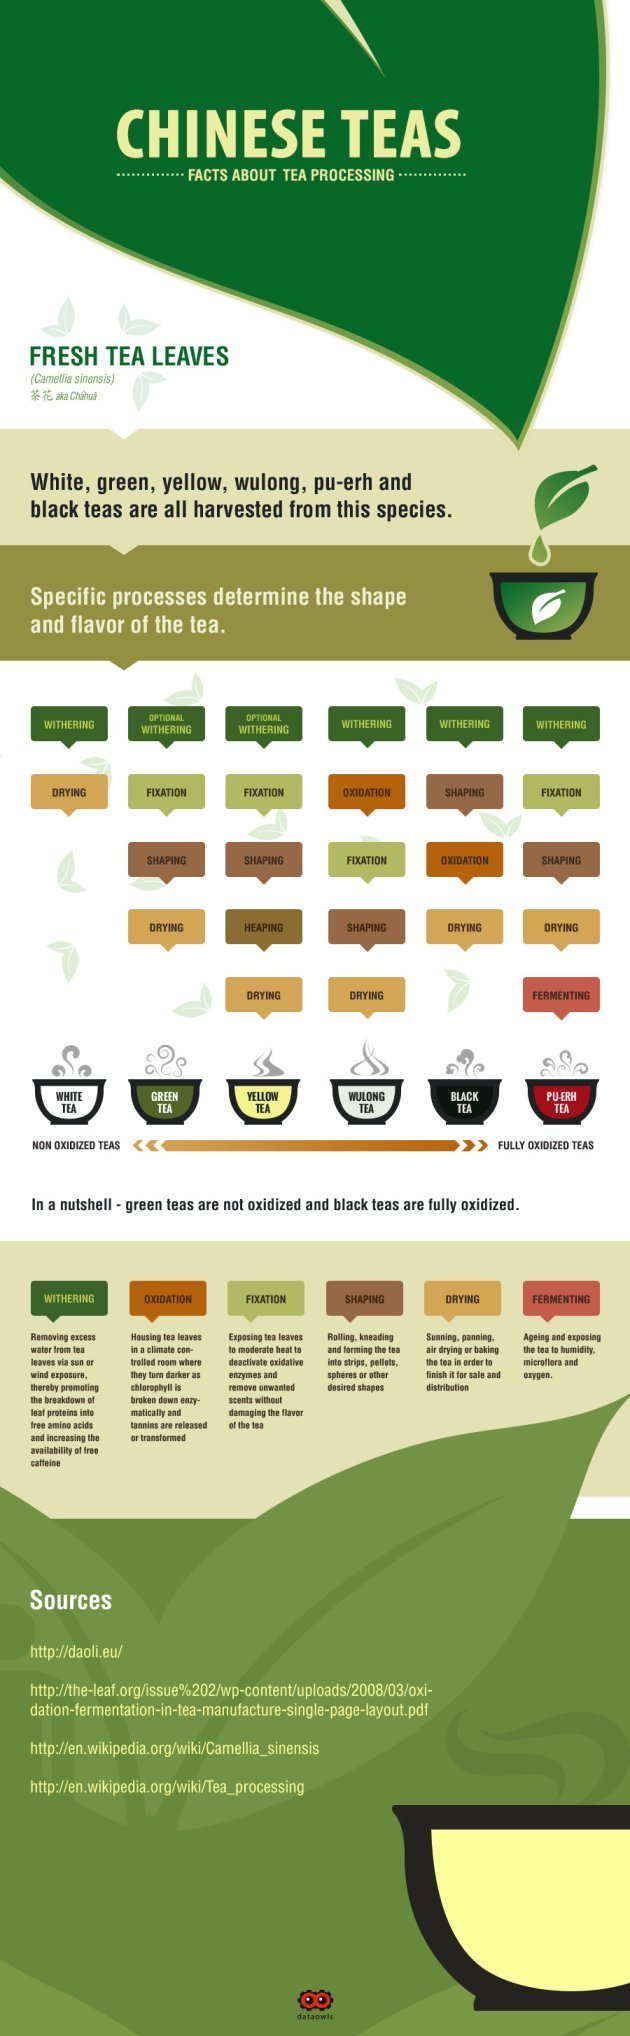 True Facts About Chinese Tea Infographic